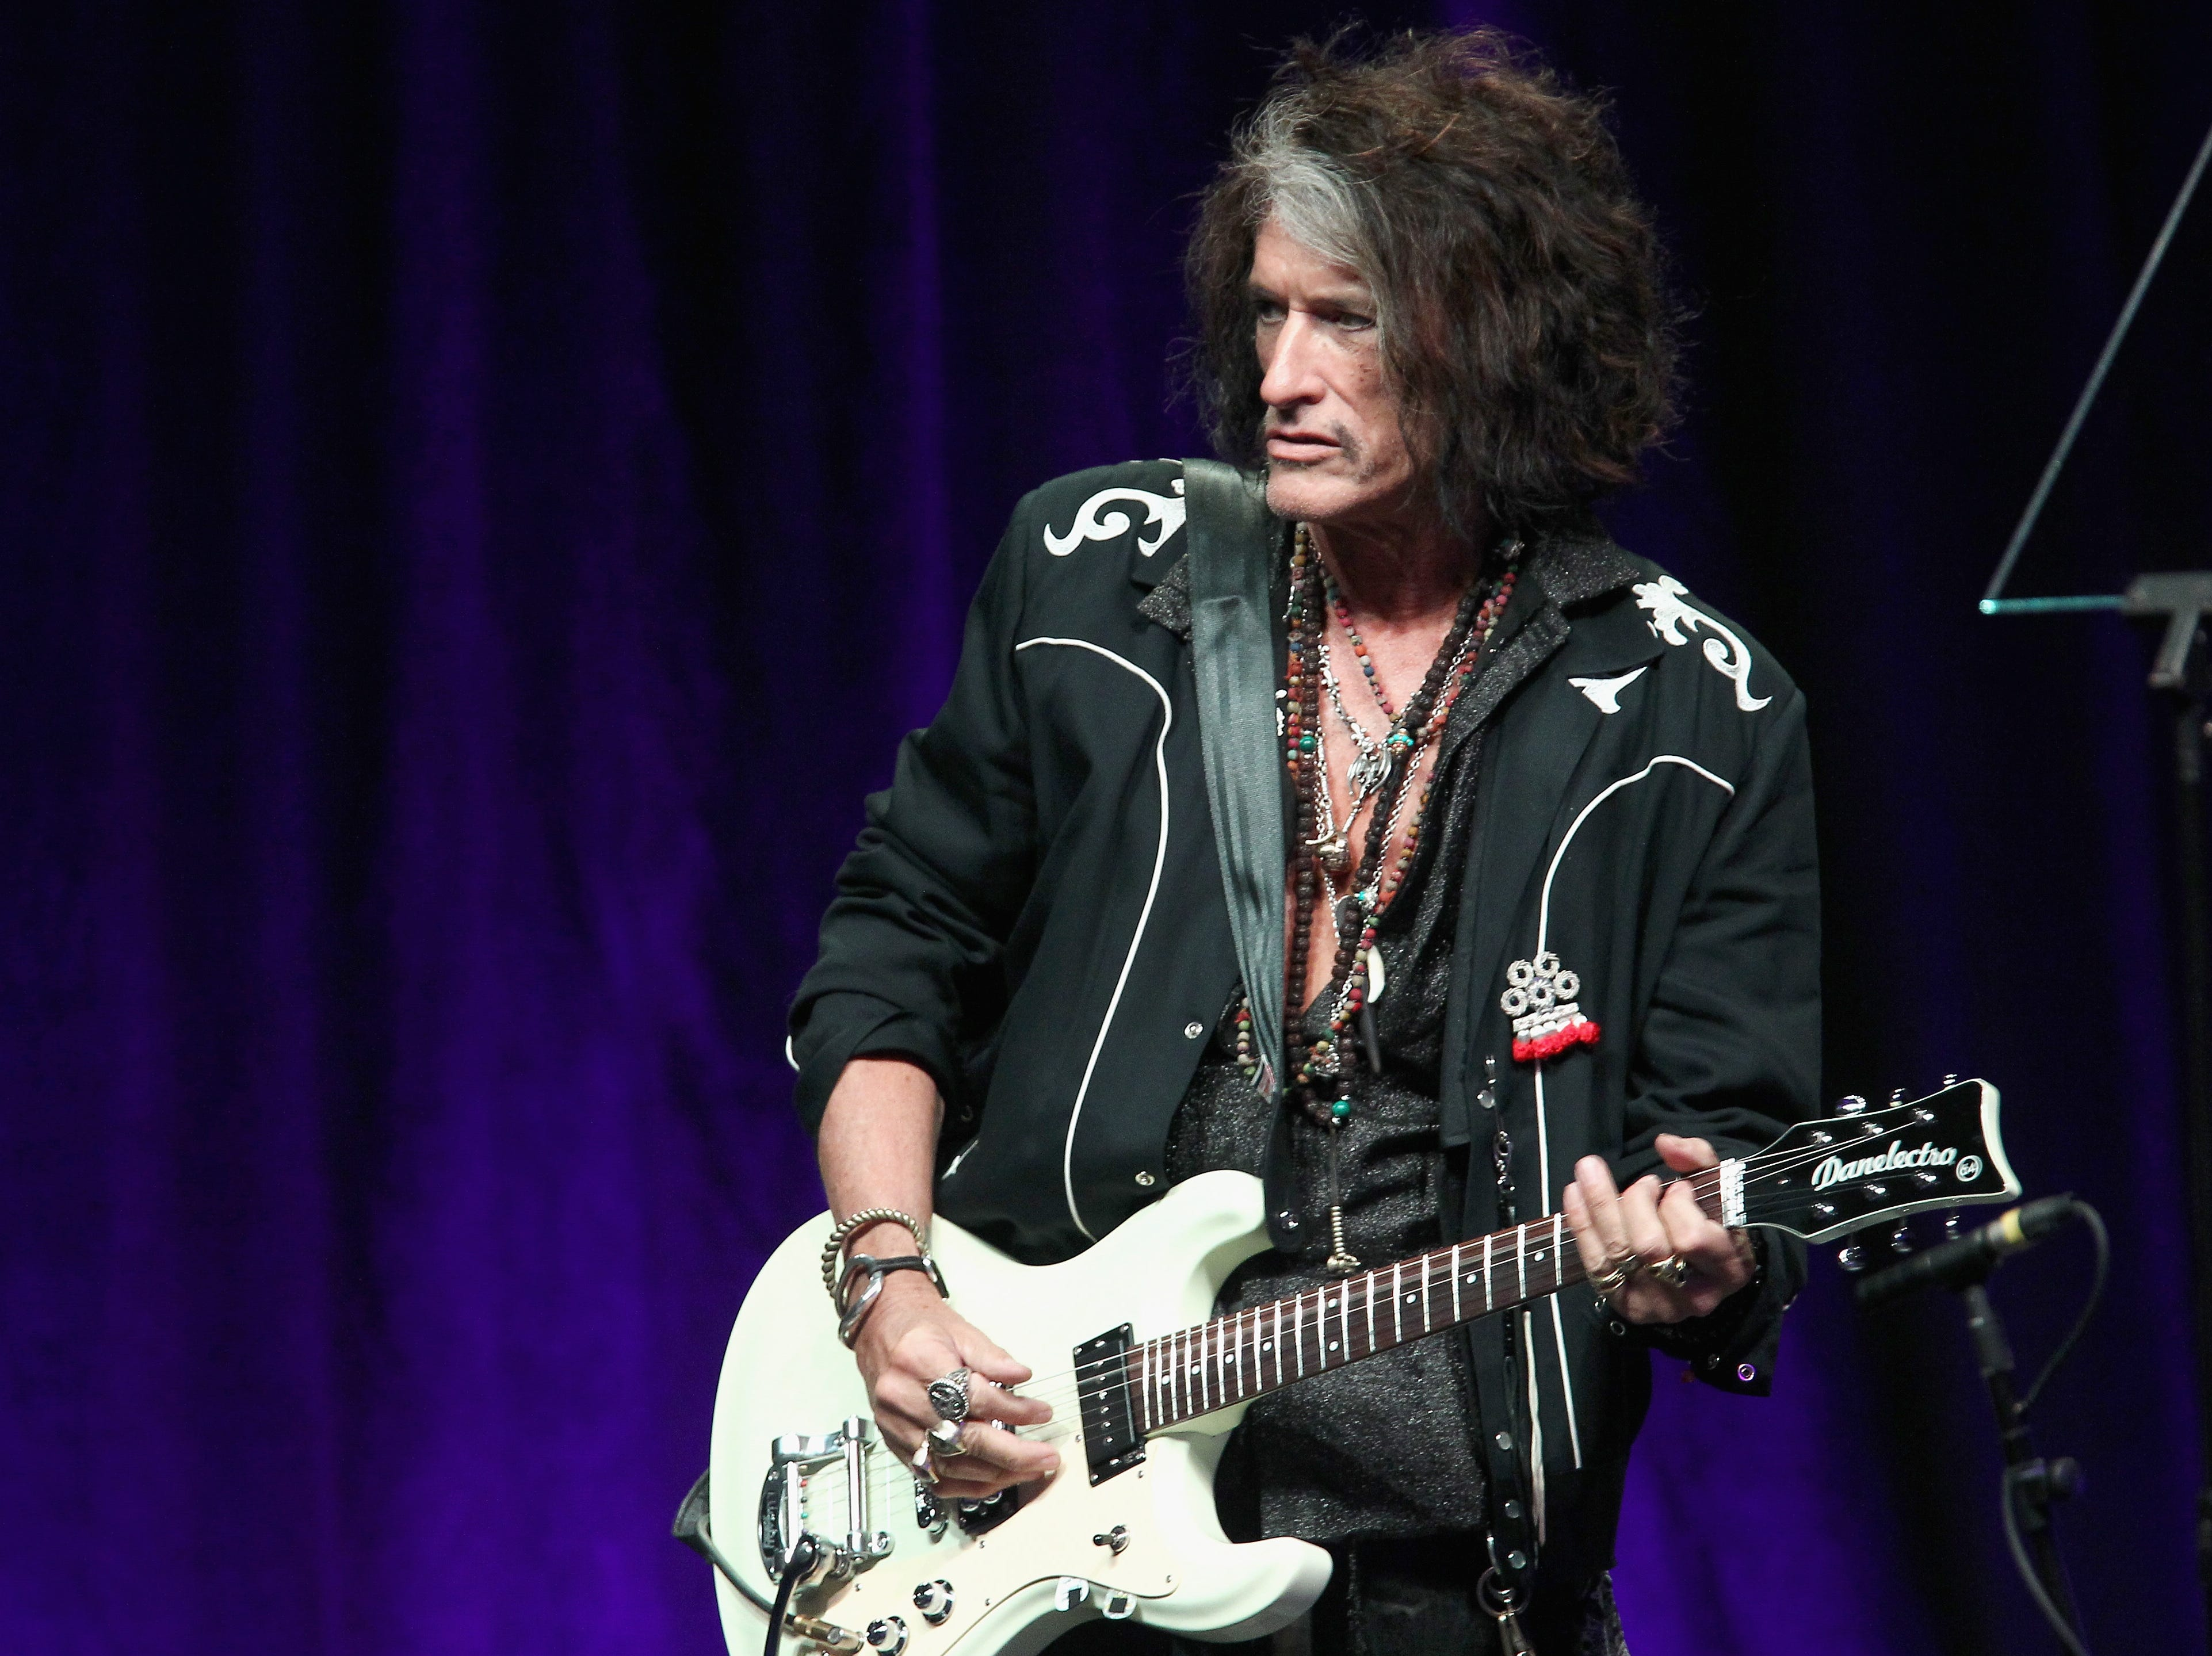 LOS ANGELES, CA - FEBRUARY 10:  Joe Perry onstage at Steven Tyler?s Second Annual GRAMMY Awards Viewing Party to benefit Janie?s Fund presented by Live Nation at Raleigh Studios on February 10, 2019 in Los Angeles, California.  (Photo by Tommaso Boddi/Getty Images for Janie's Fund) ORG XMIT: 775294826 ORIG FILE ID: 1097754008